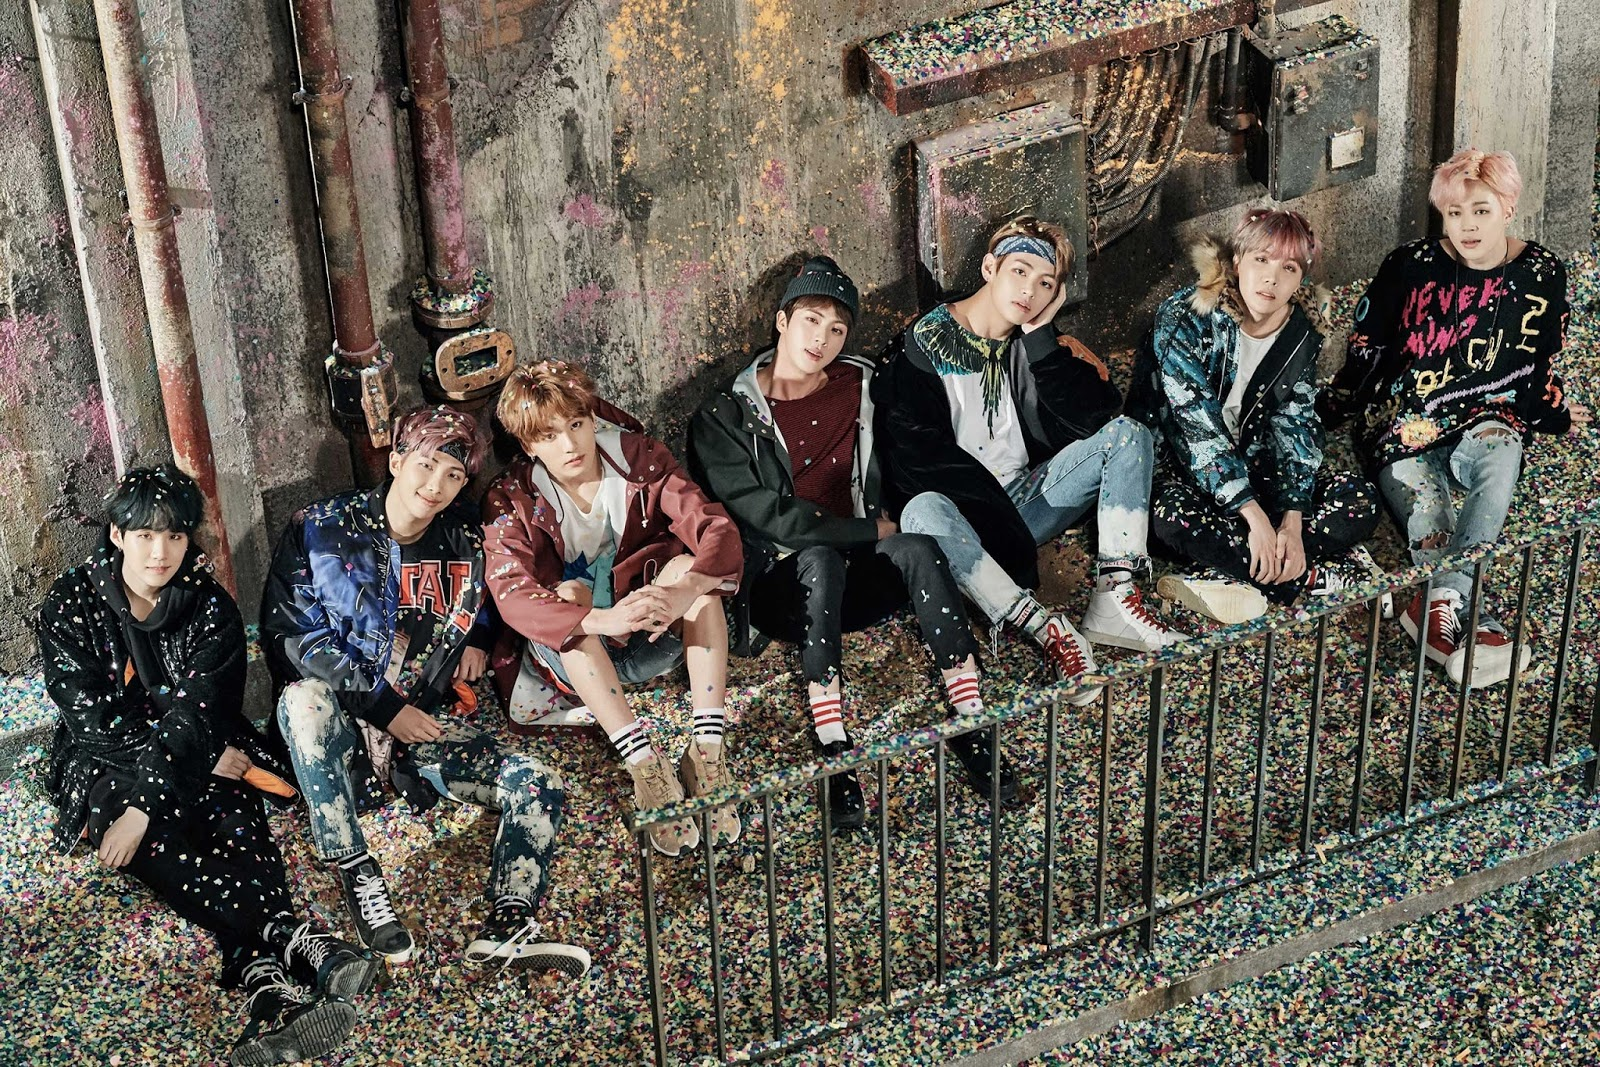 MP3] Not Today - BTS WINGS : You Never Walk Alone (MP3, MP4